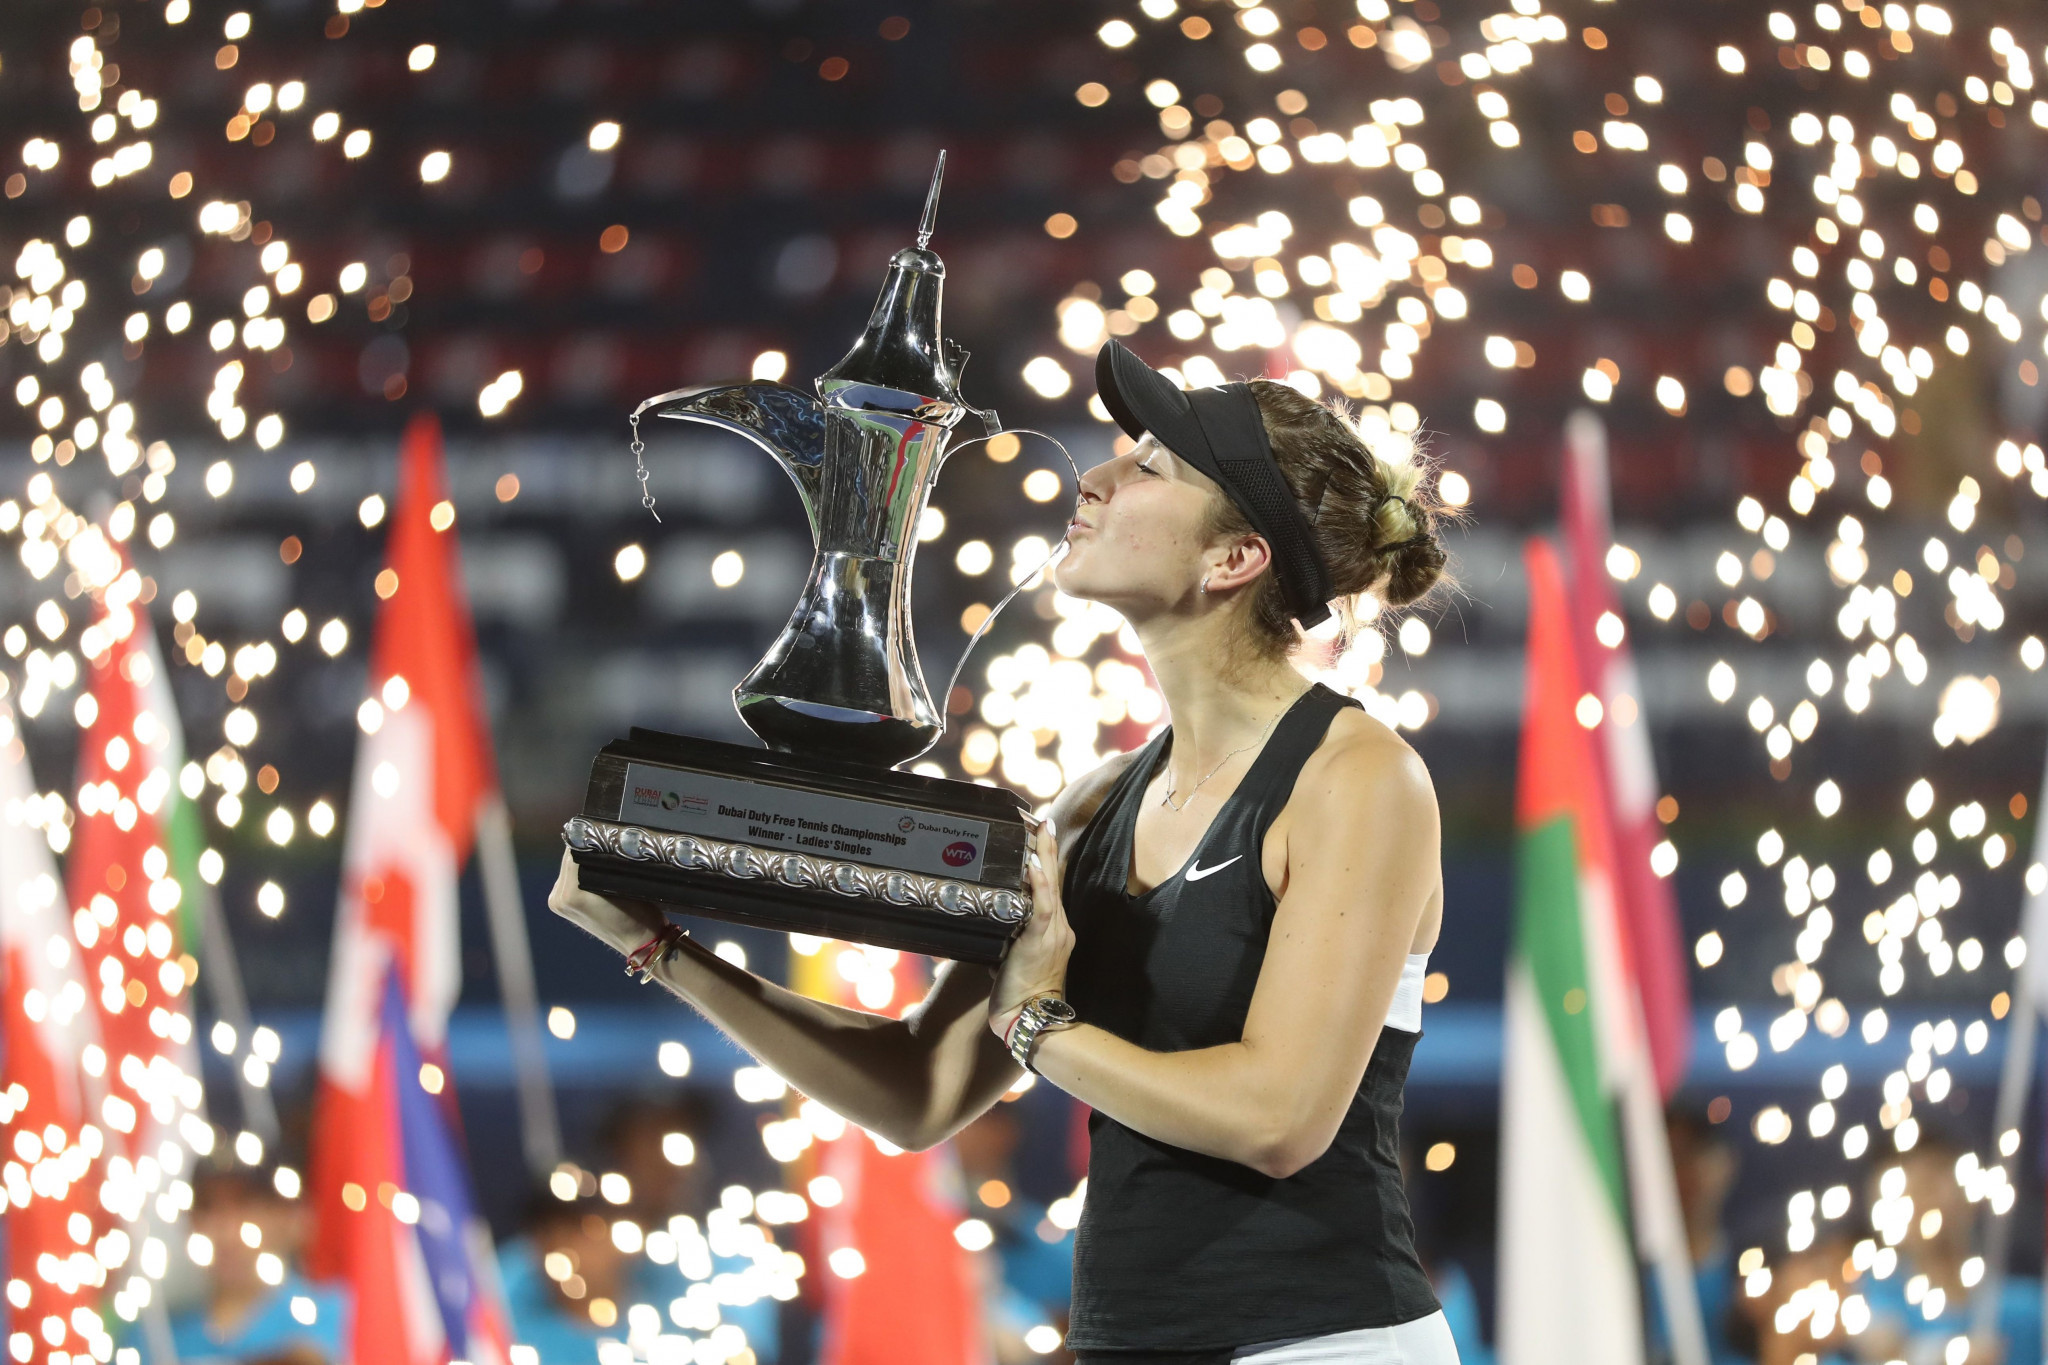 Belinda Bencic ousted Petra Kvitová in three sets to clinch victory in Dubai ©Getty Images